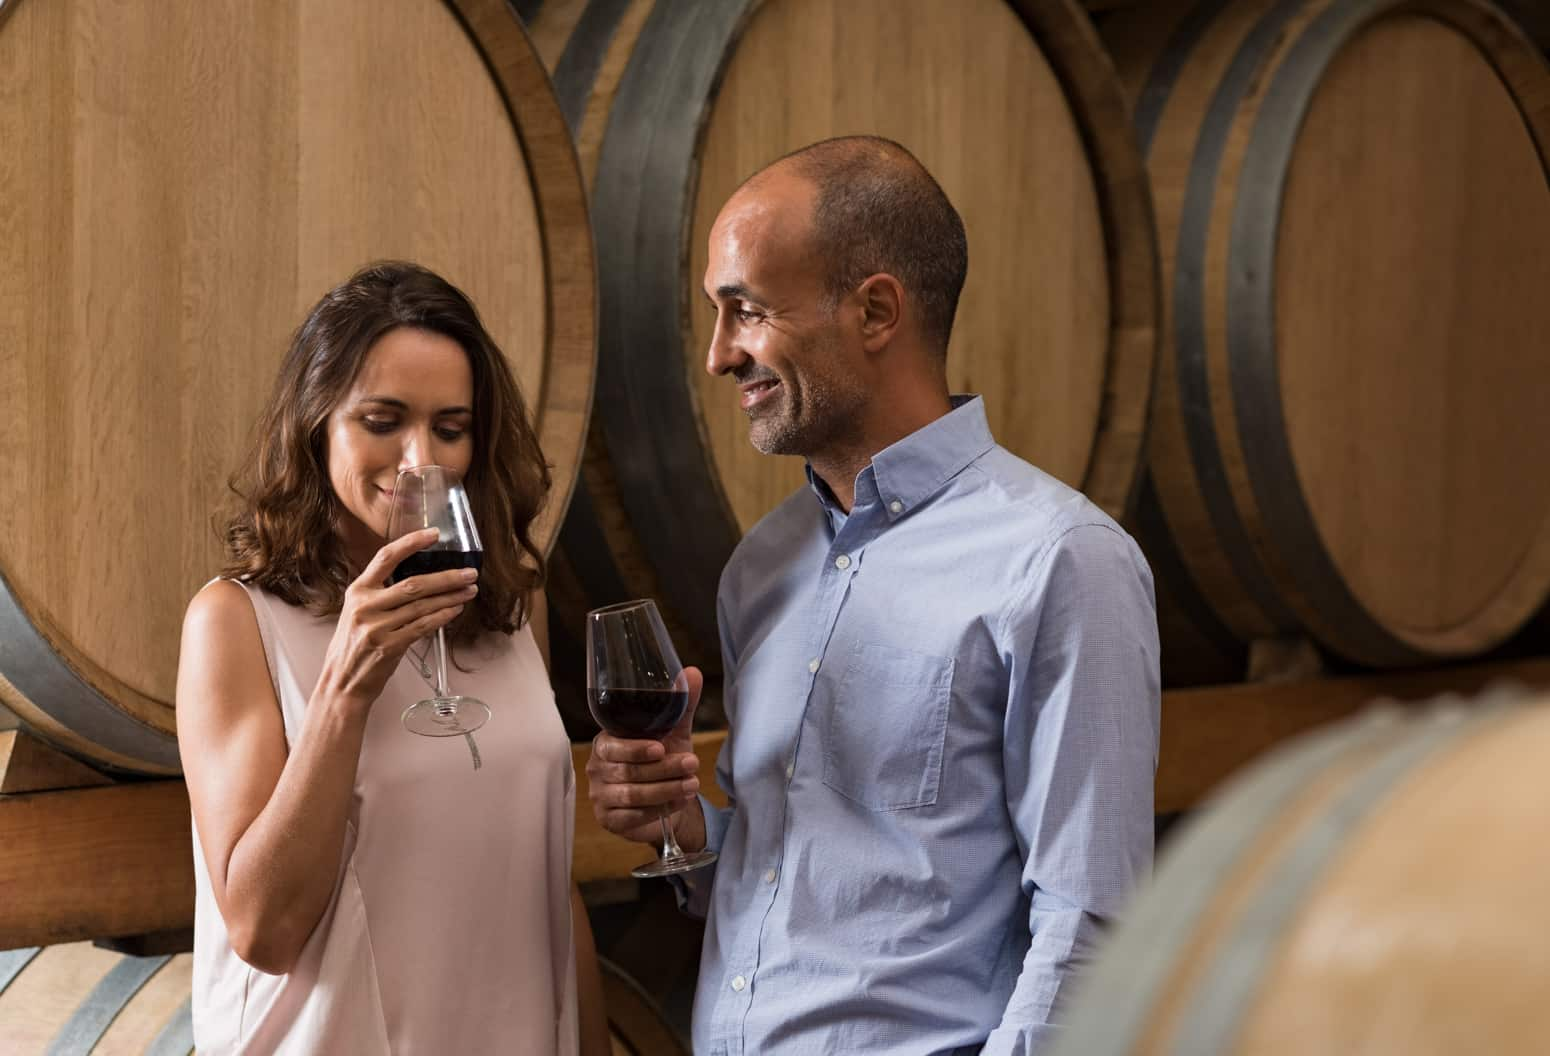 A woman and Man tasting wine in front of wine casks